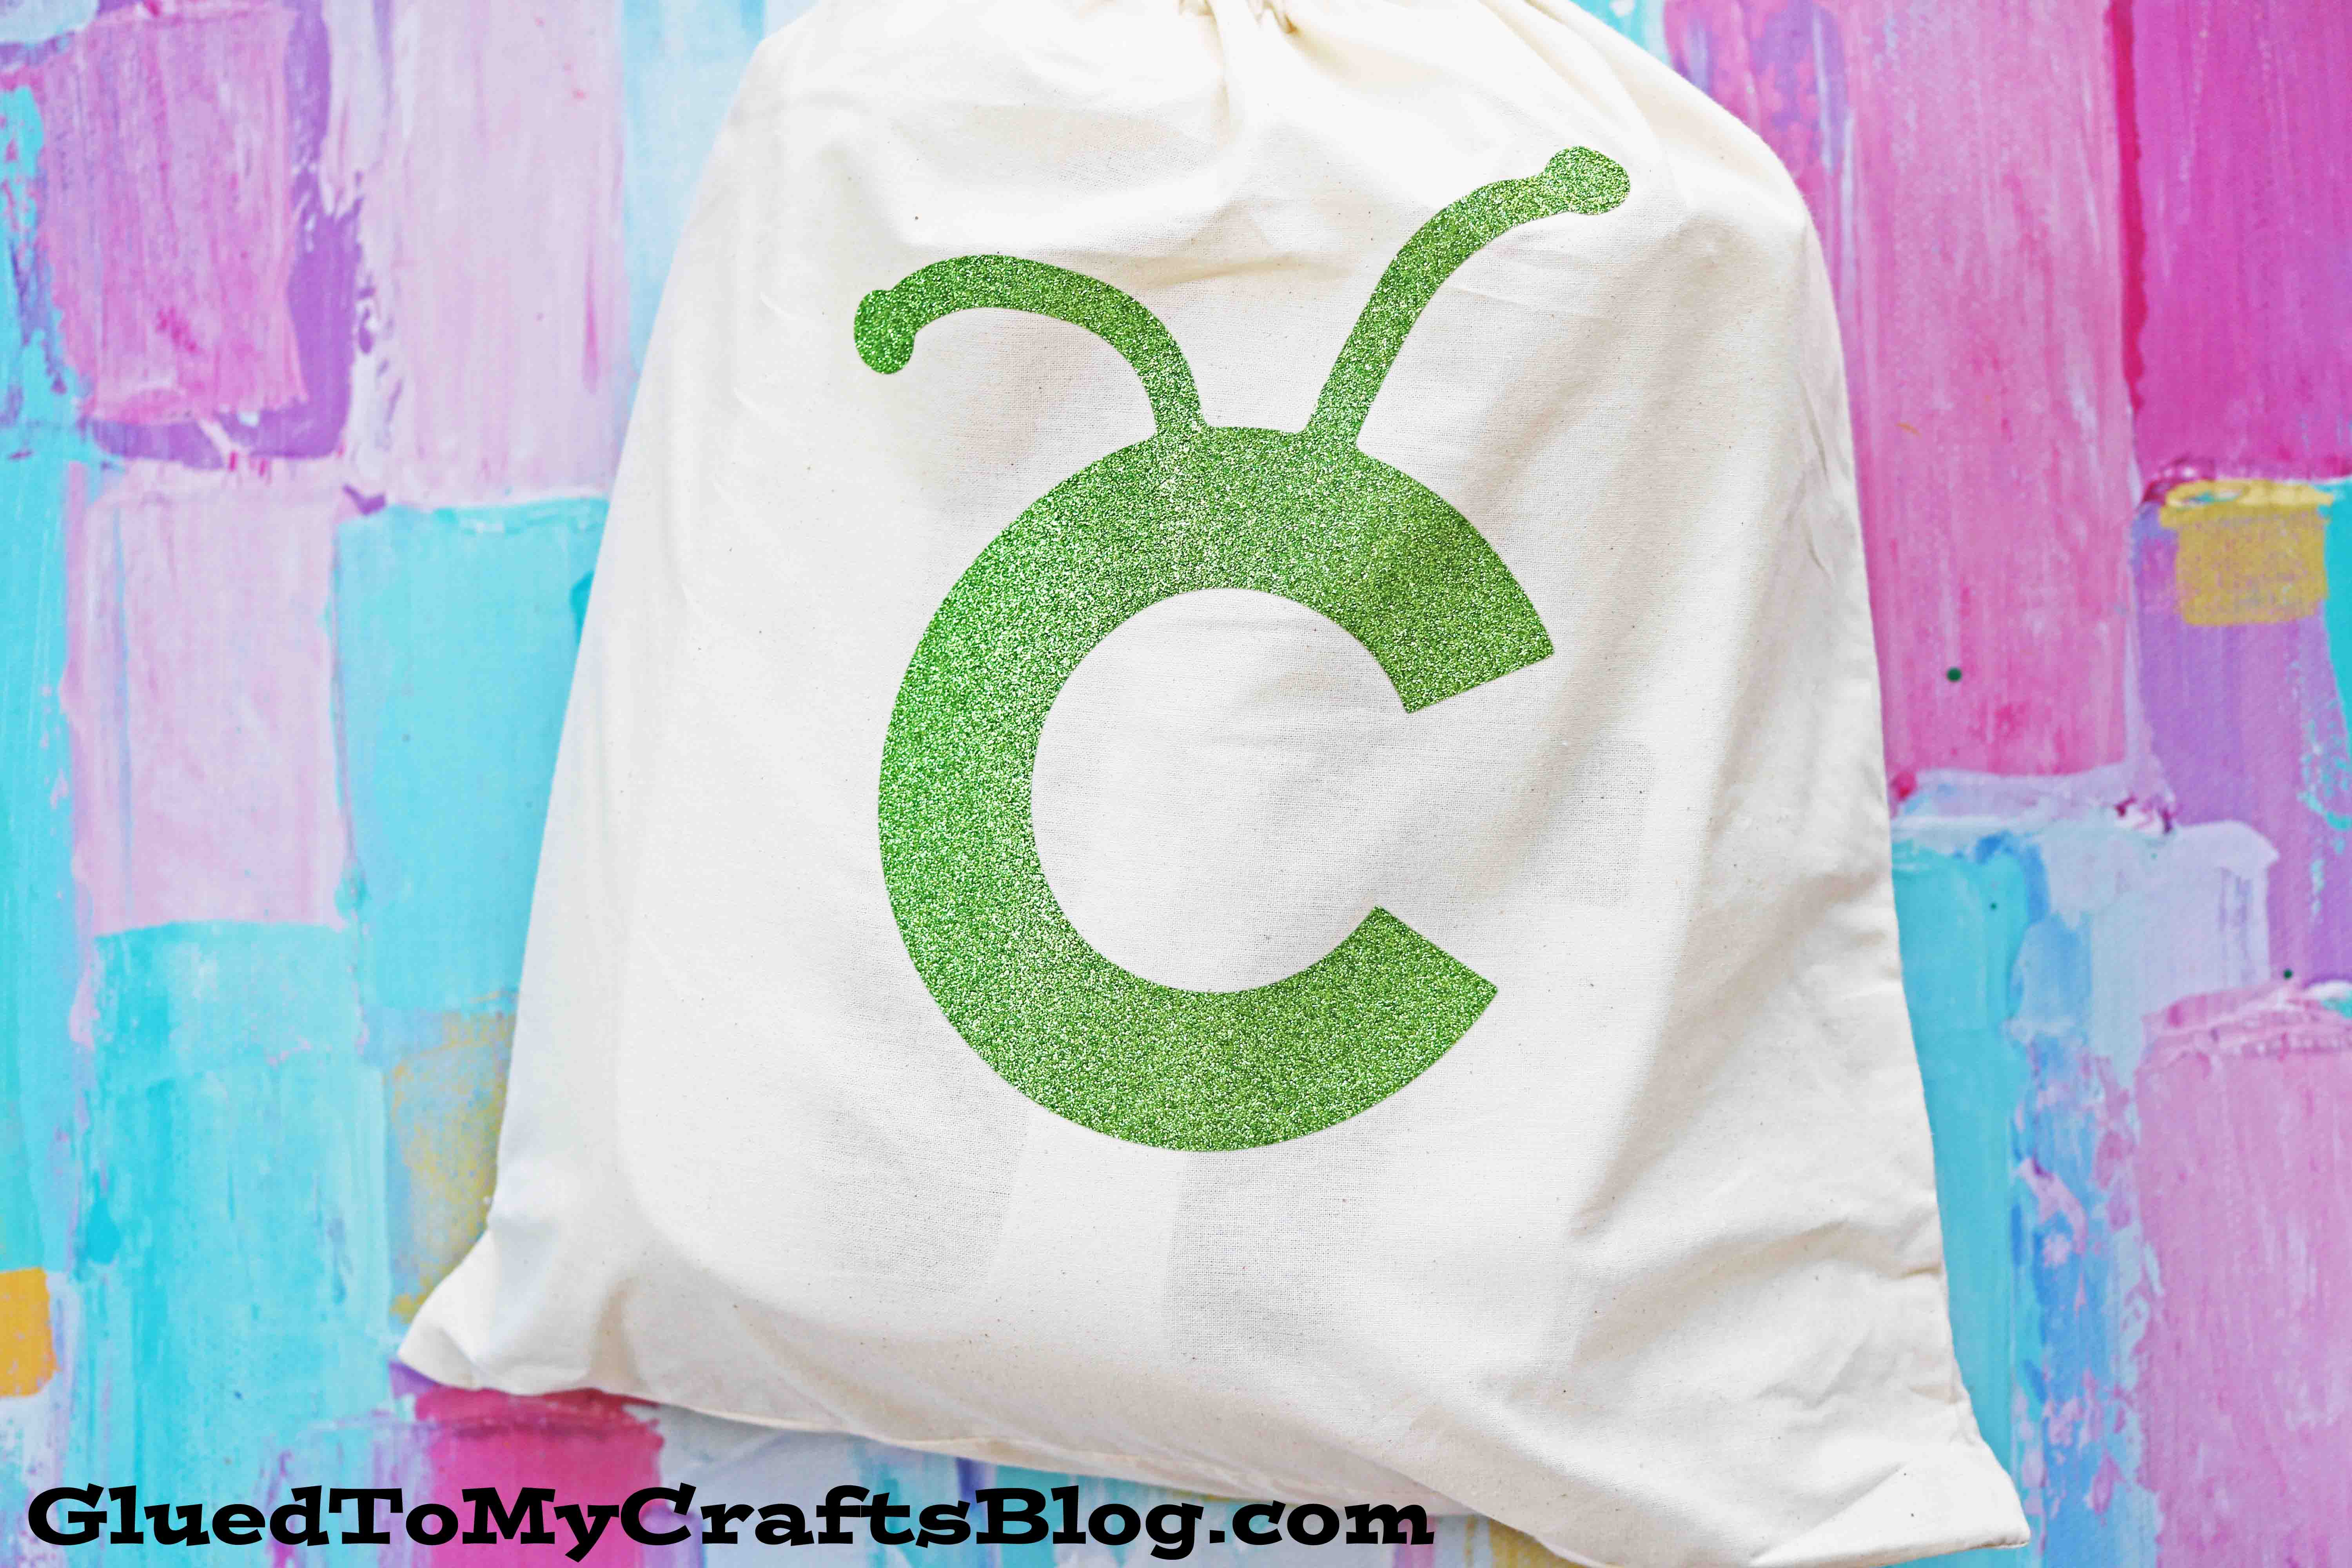 Glued To My Crafts Cricut Easy Press 2 Machine Review